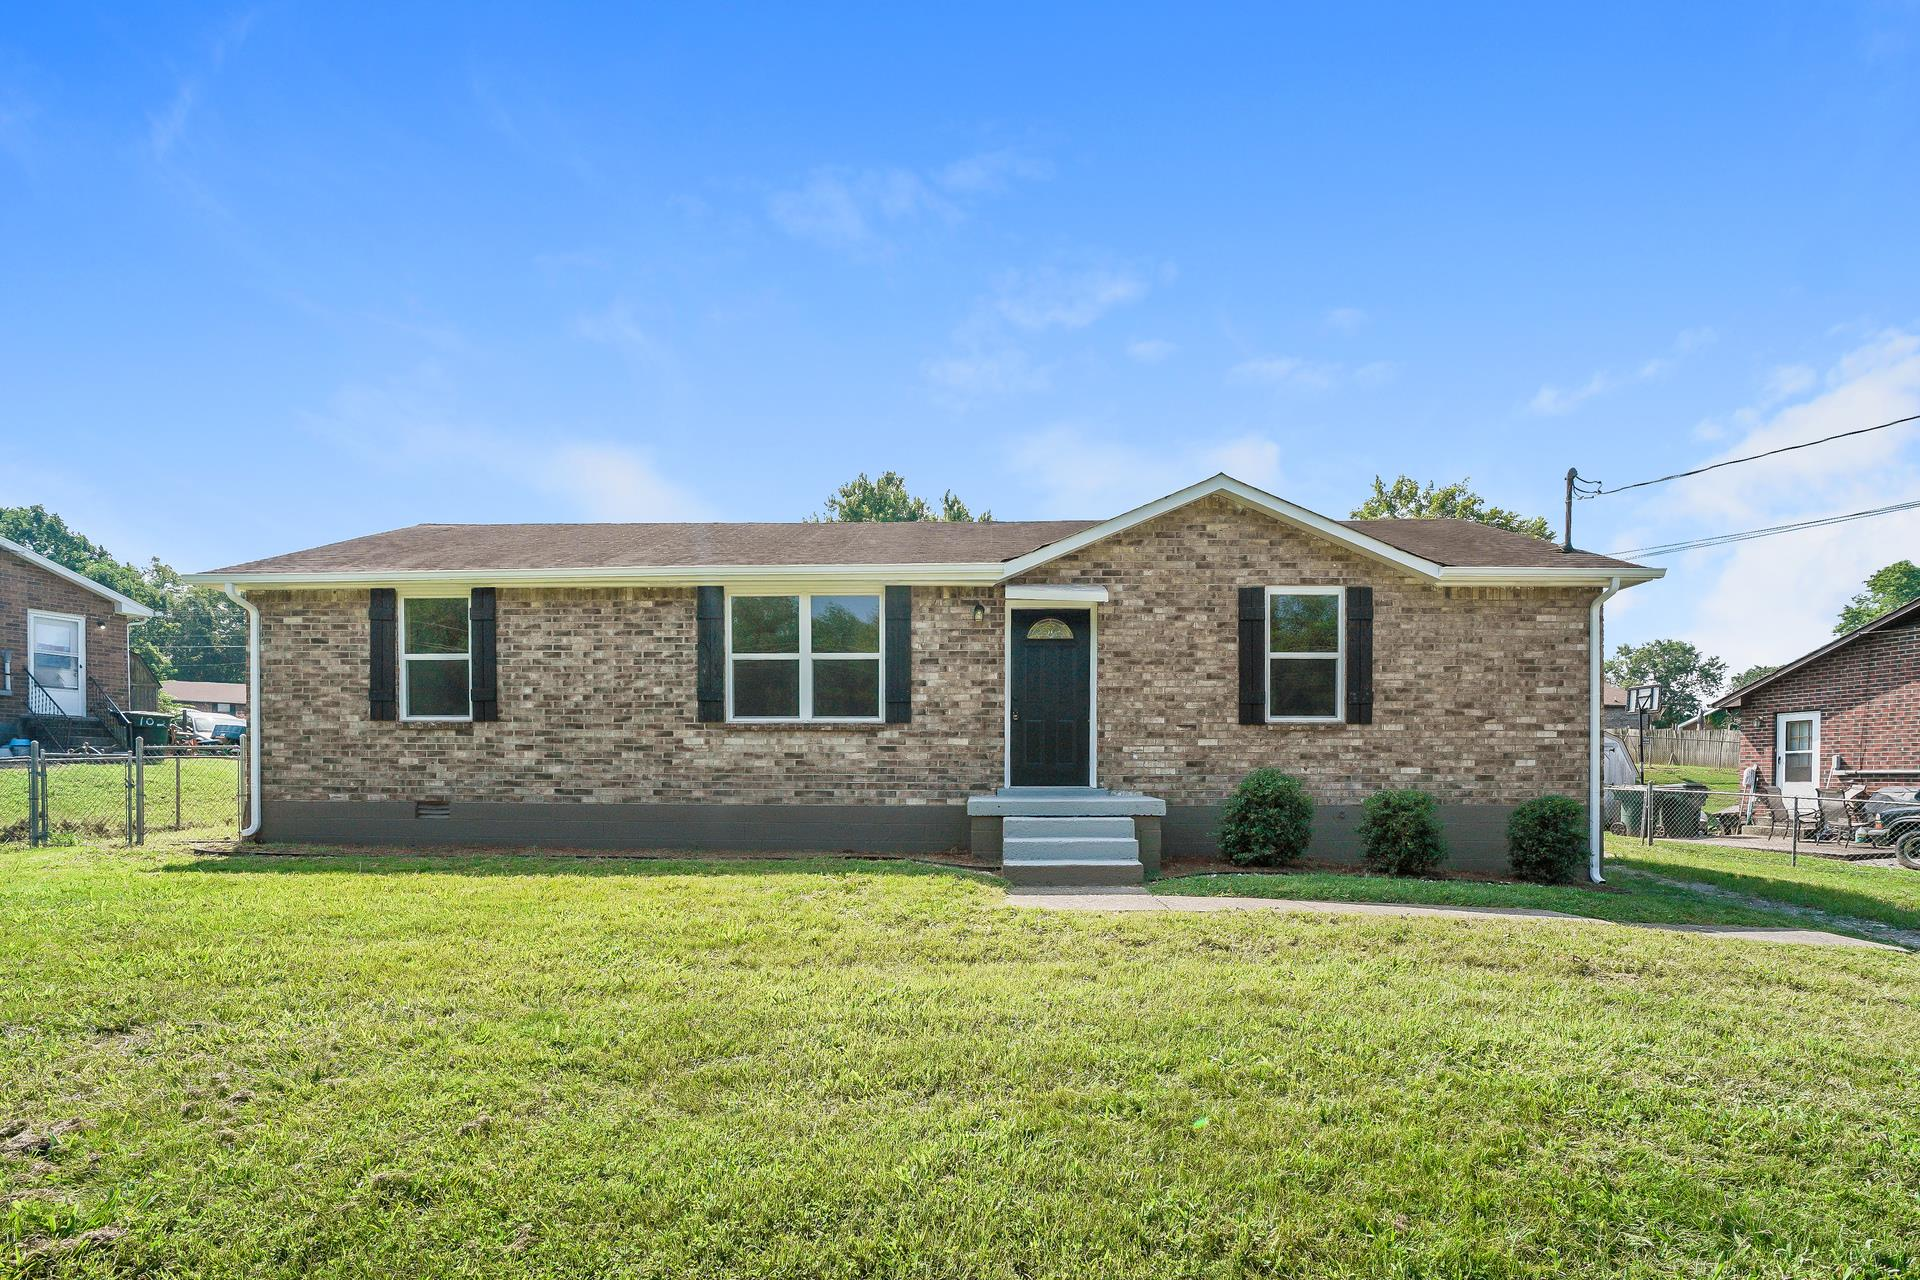 106 Creekside Ct Gallatin Tn 37066 Home For Sale